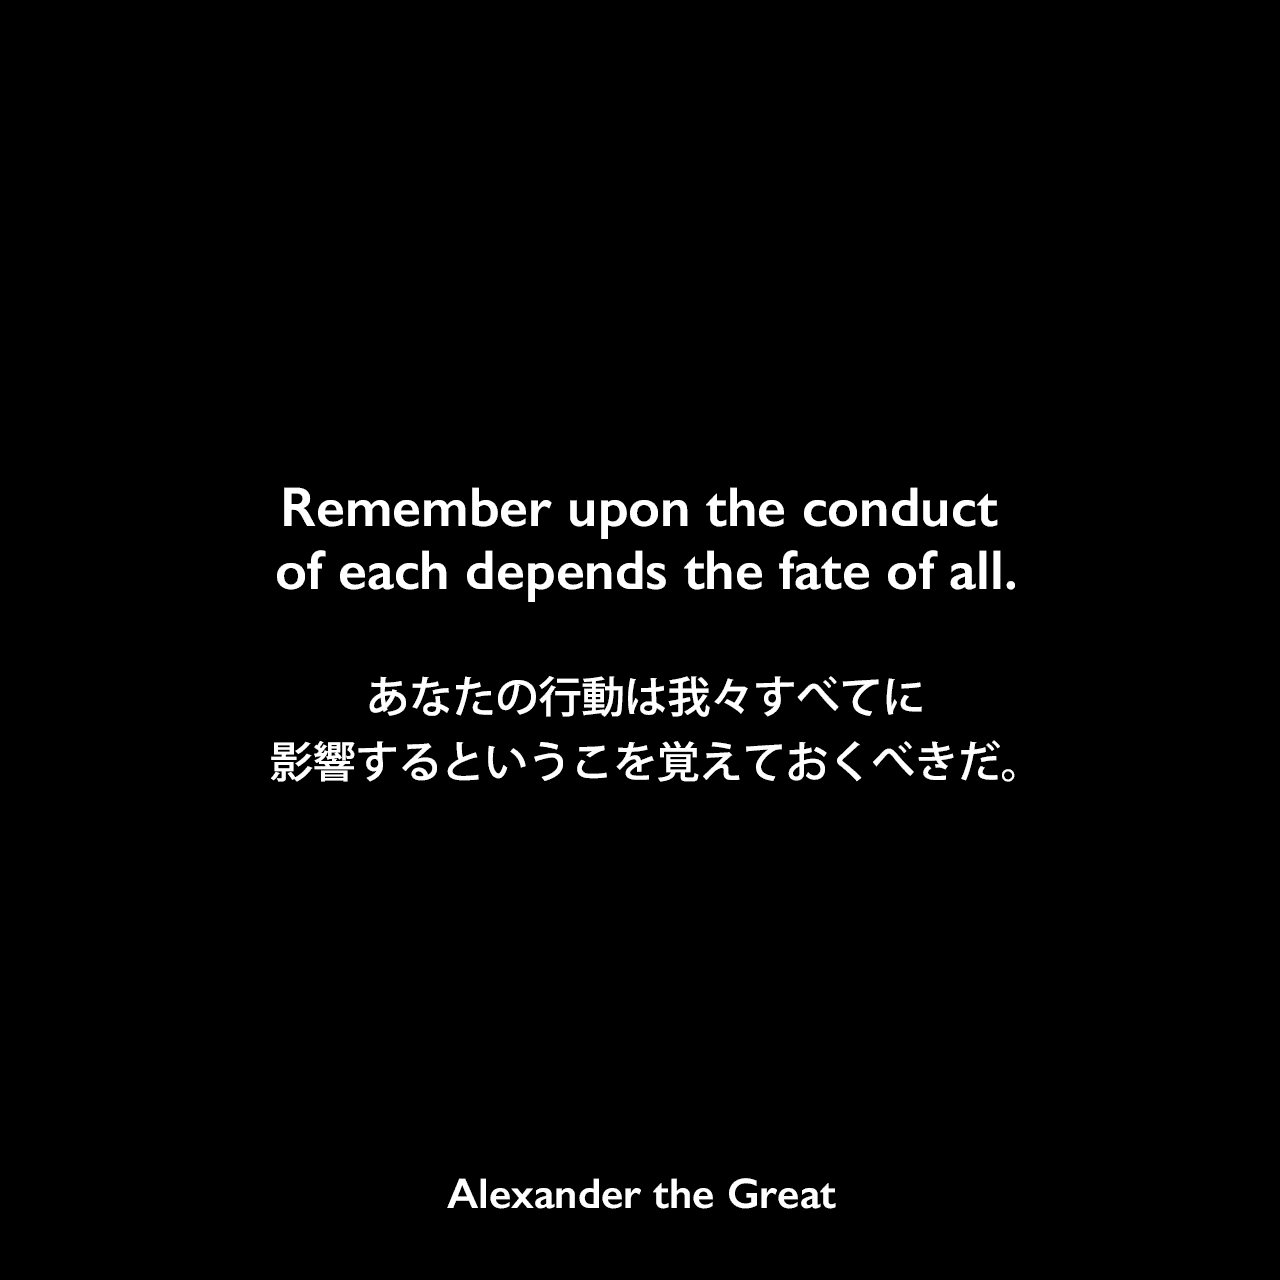 Remember upon the conduct of each depends the fate of all.あなたの行動は我々すべてに影響するというこを覚えておくべきだ。Alexander the Great